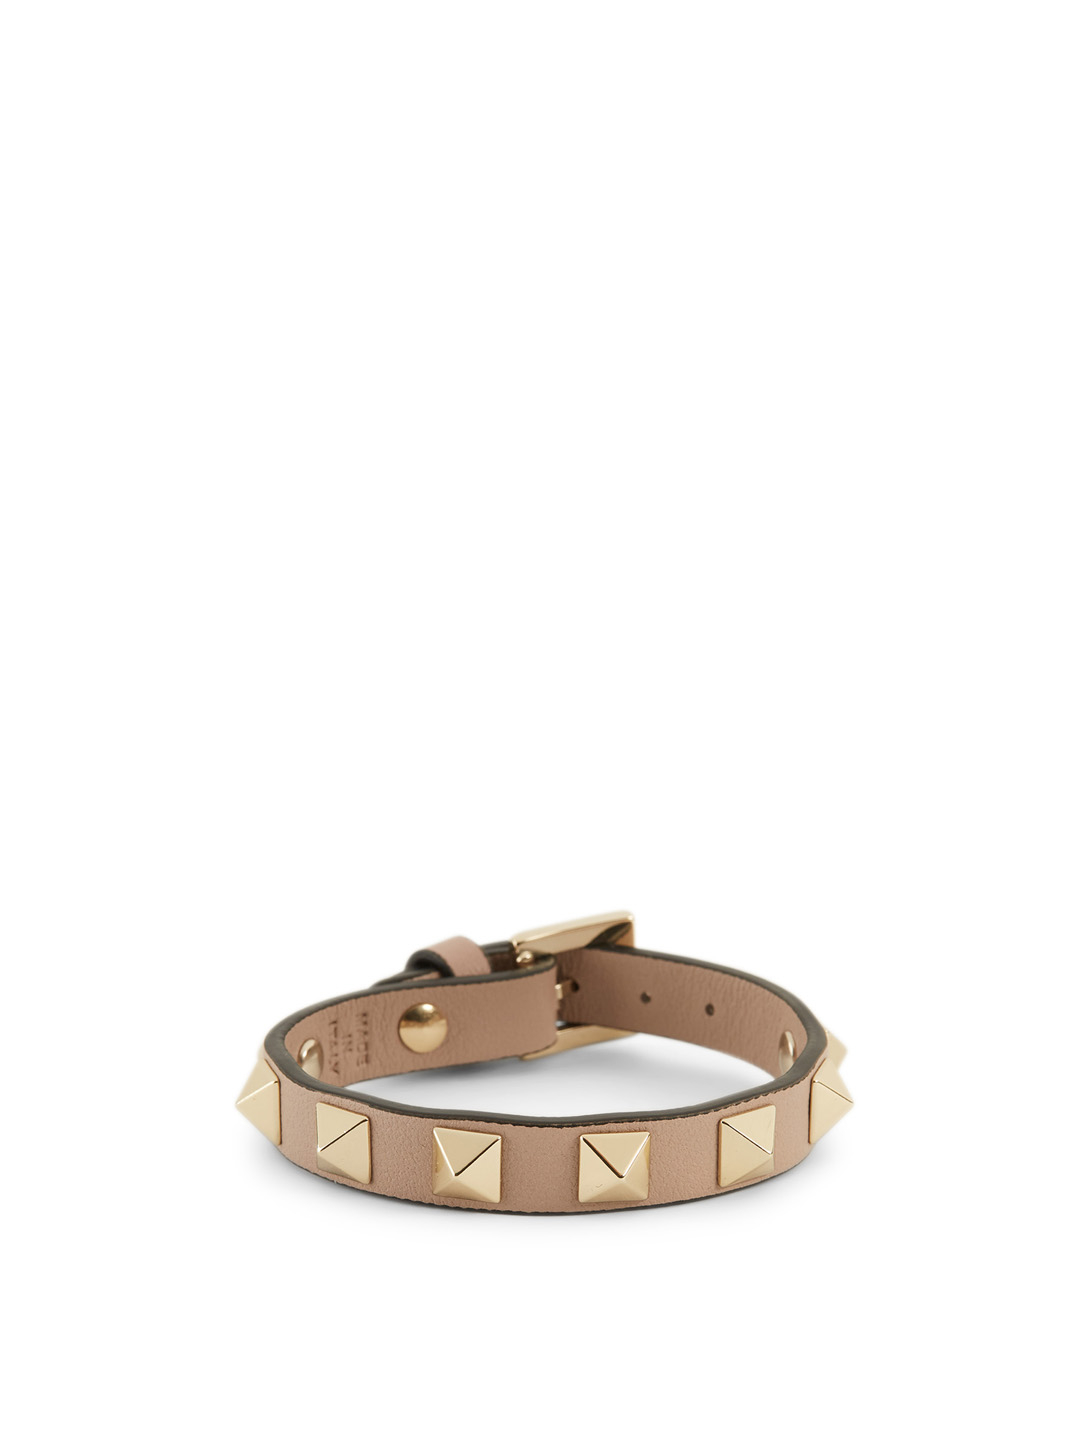 VALENTINO Rockstud Leather Bracelet Women's Metallic